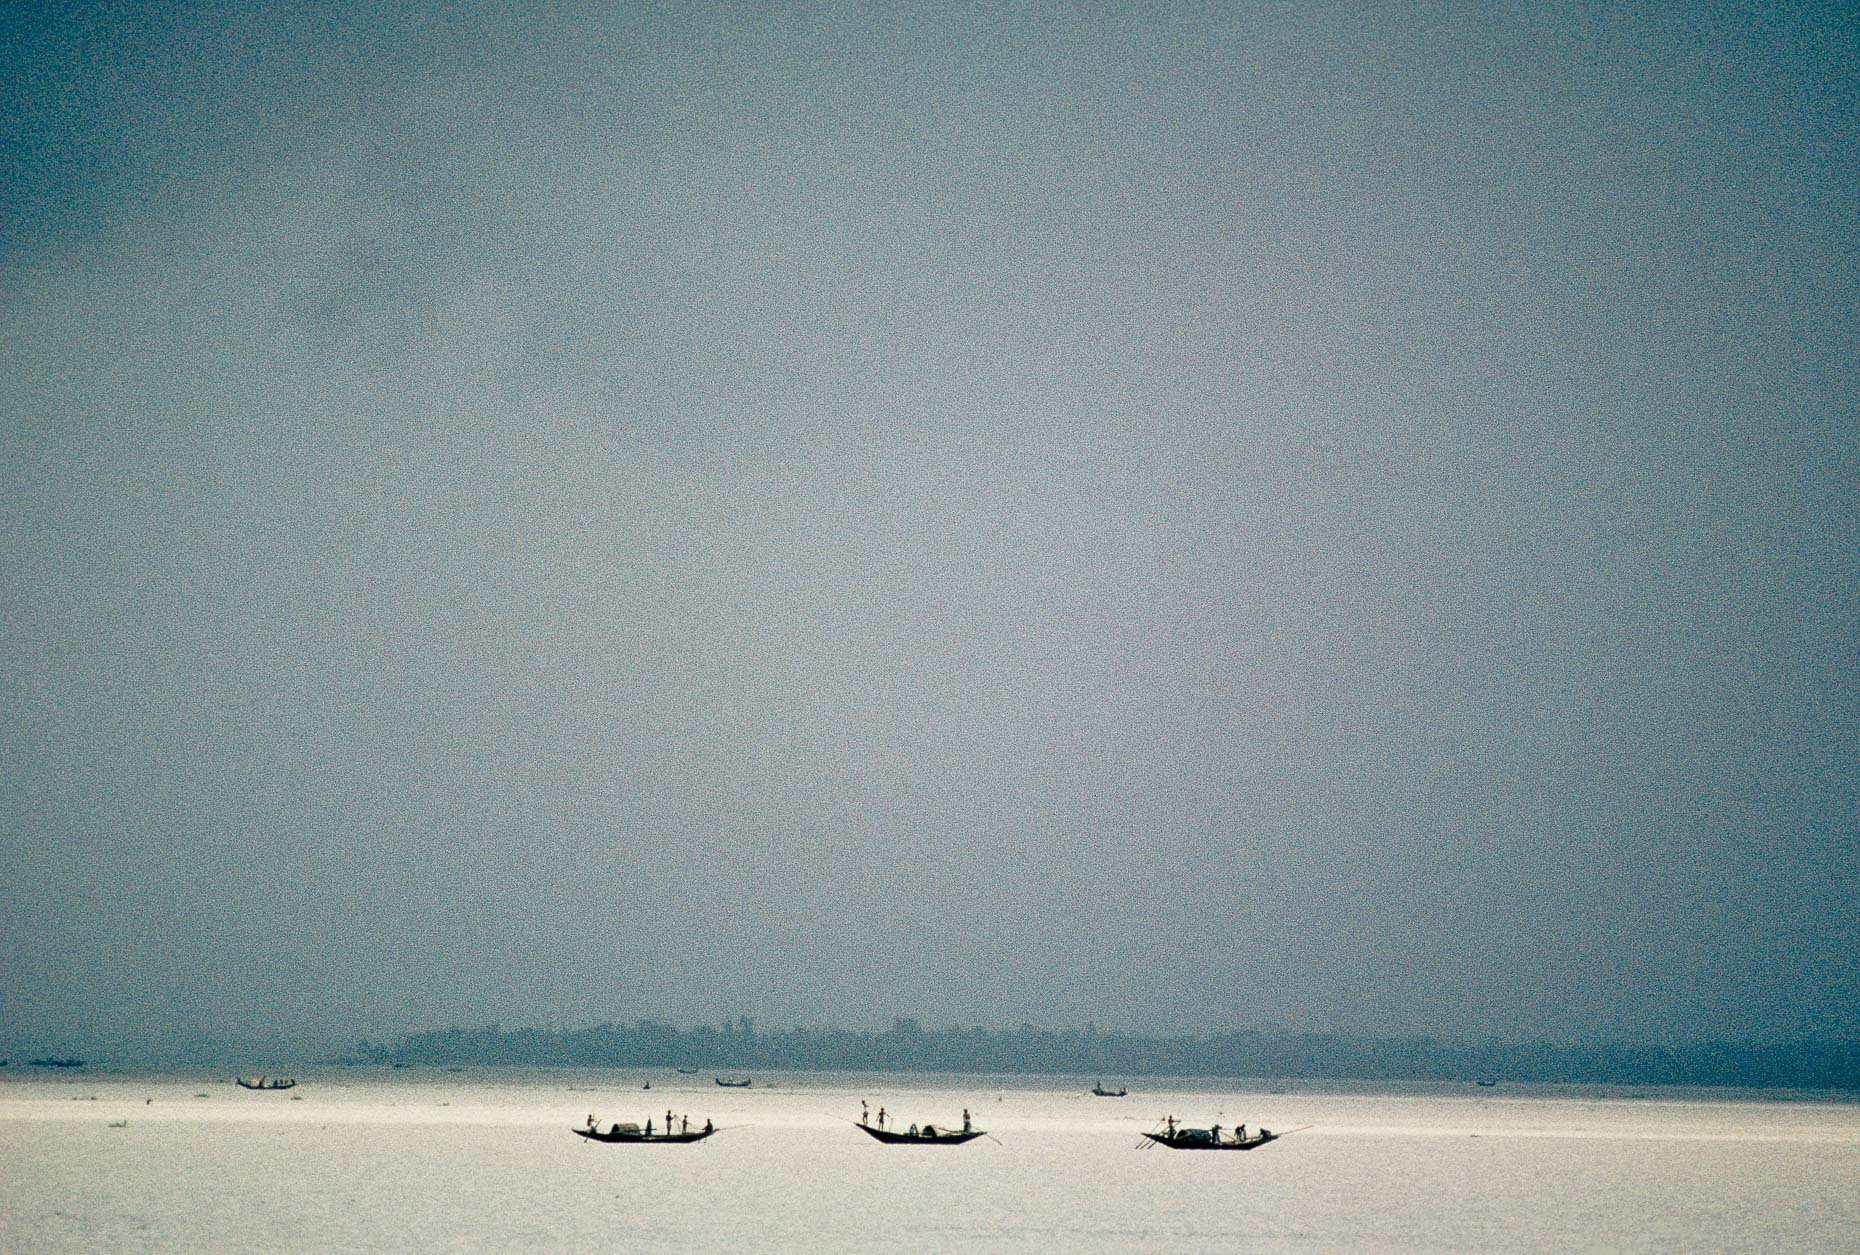 Fishing on the Pankali river 1990, Bangladesh